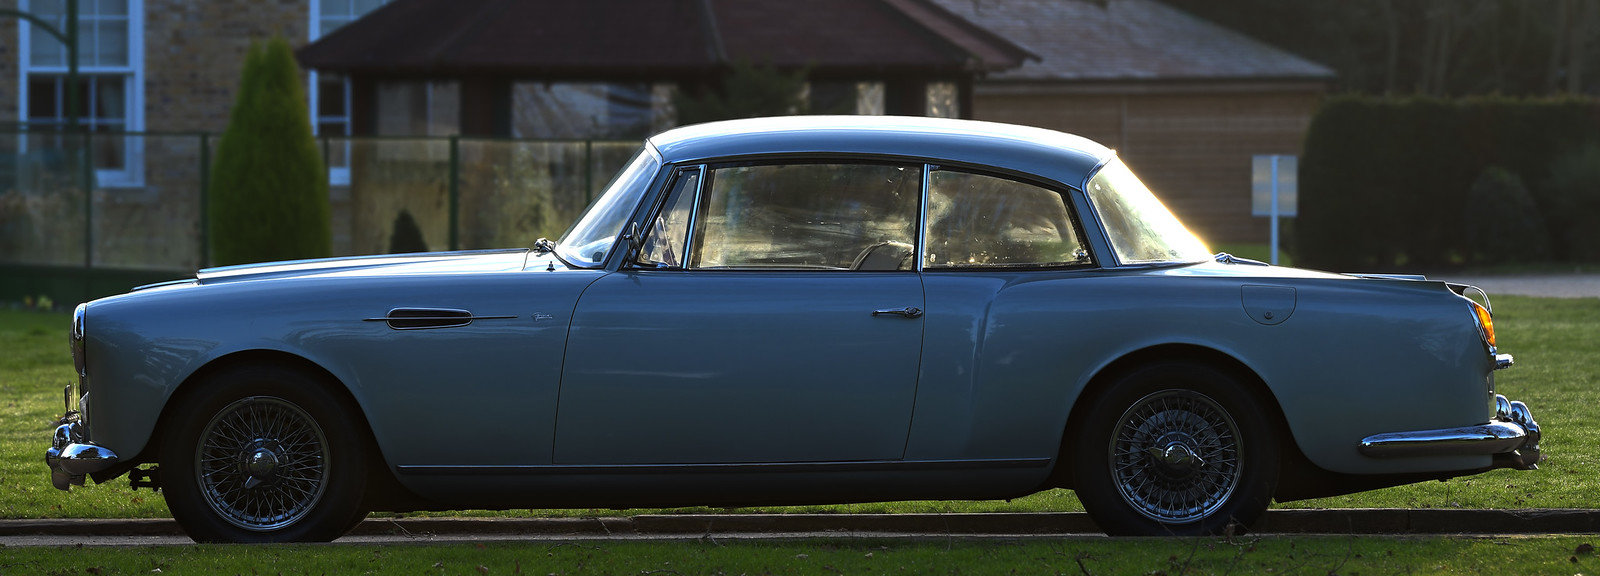 1958 Alvis TD21 Coachwork by Graber LHD For Sale (picture 2 of 6)